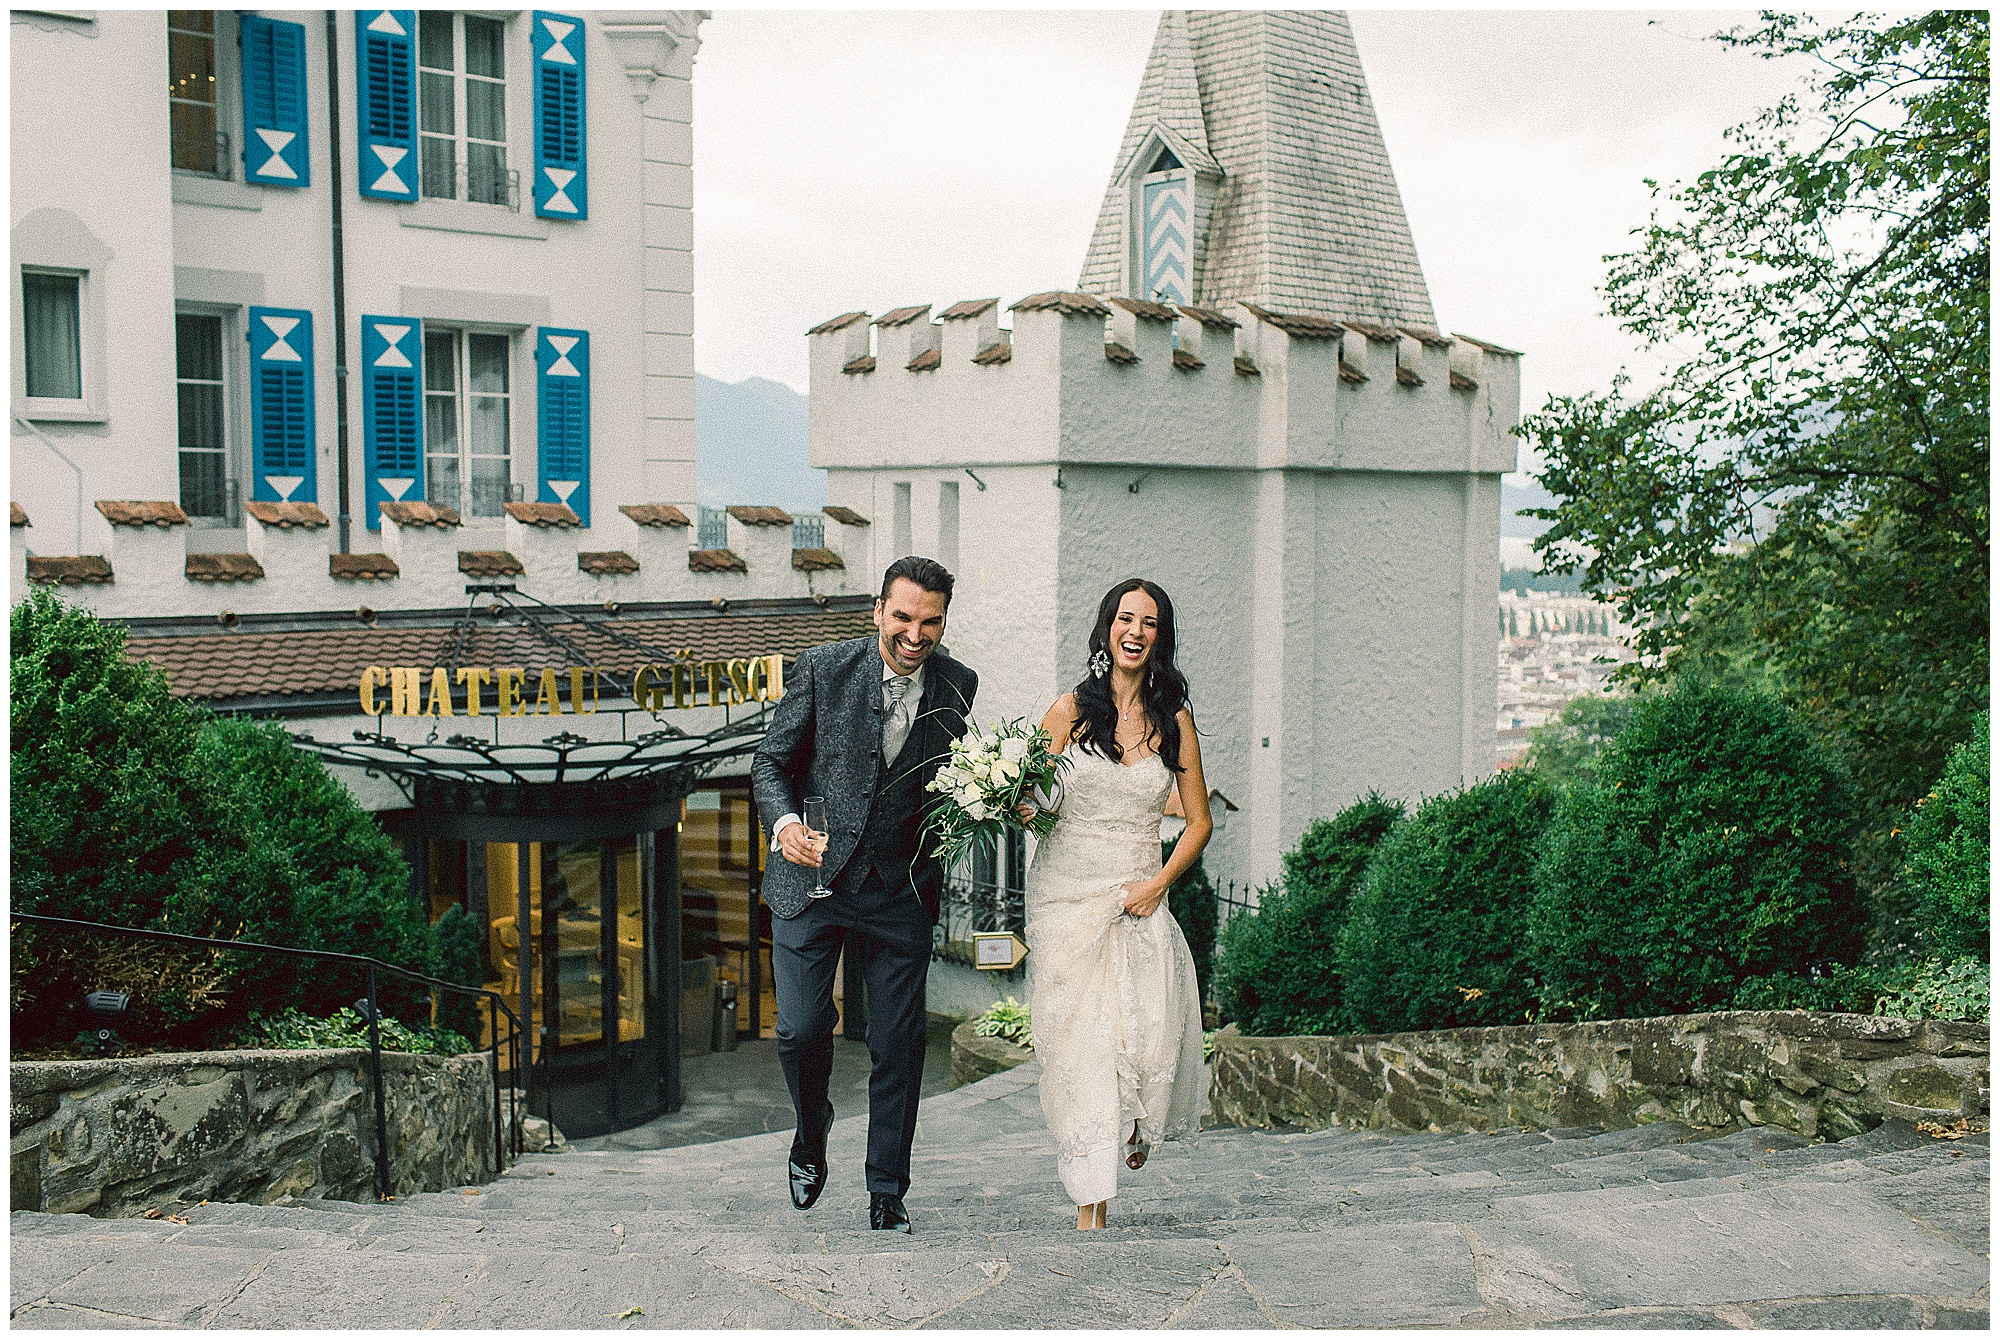 chateau-gutsch-wedding-switzerland-fuji-400h-stefano-degirmenci_1038.jpg